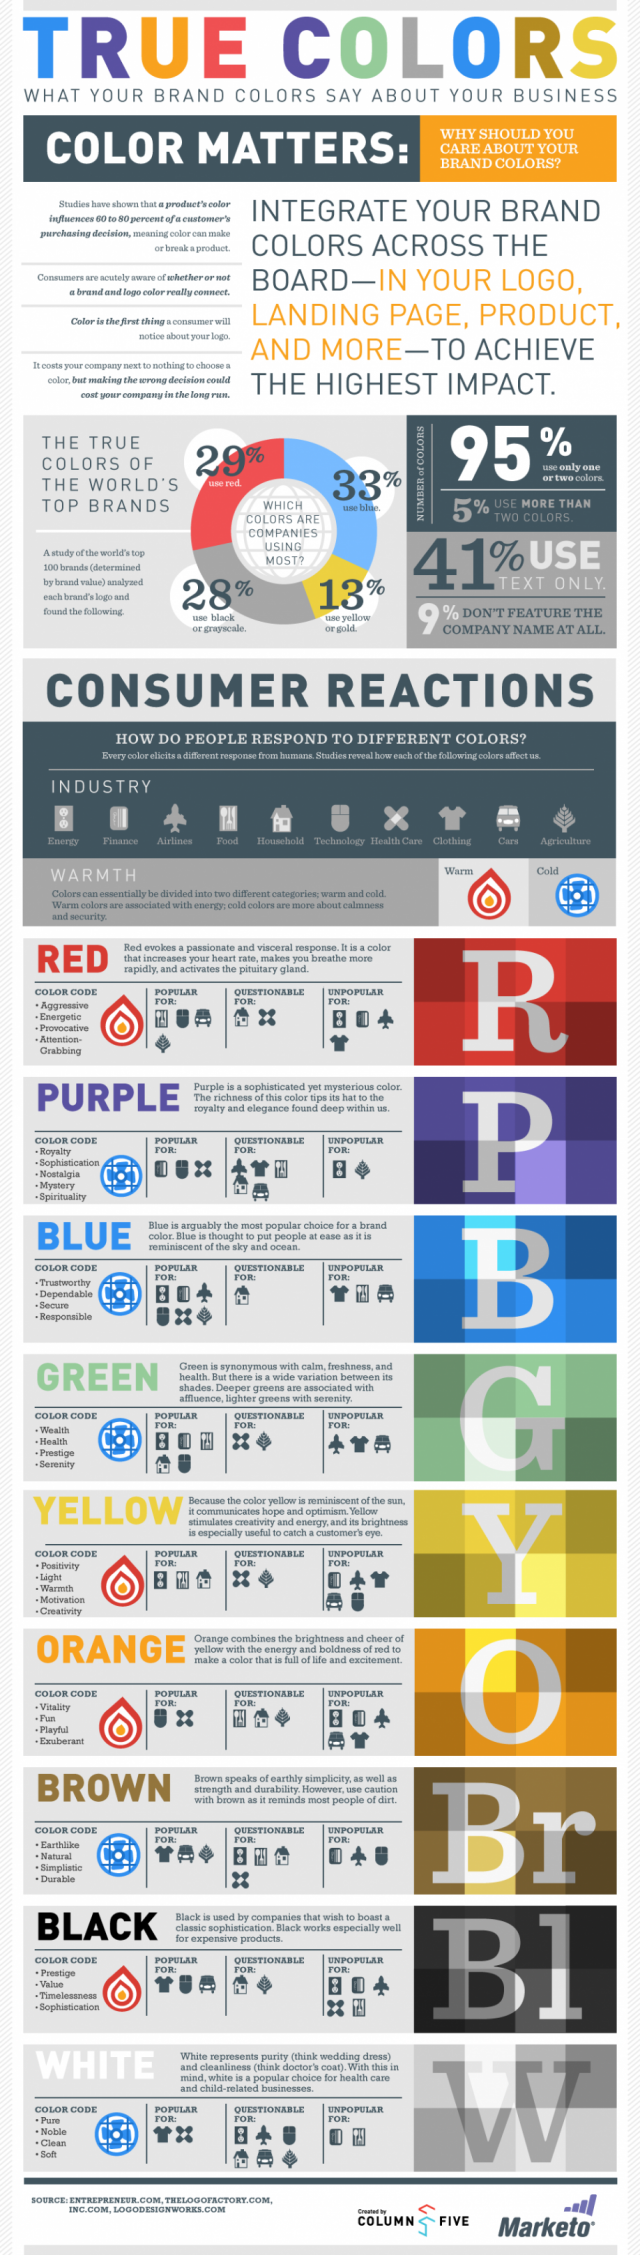 What-Your-Brand-Colors-Say-About-Your-Business-Infographic